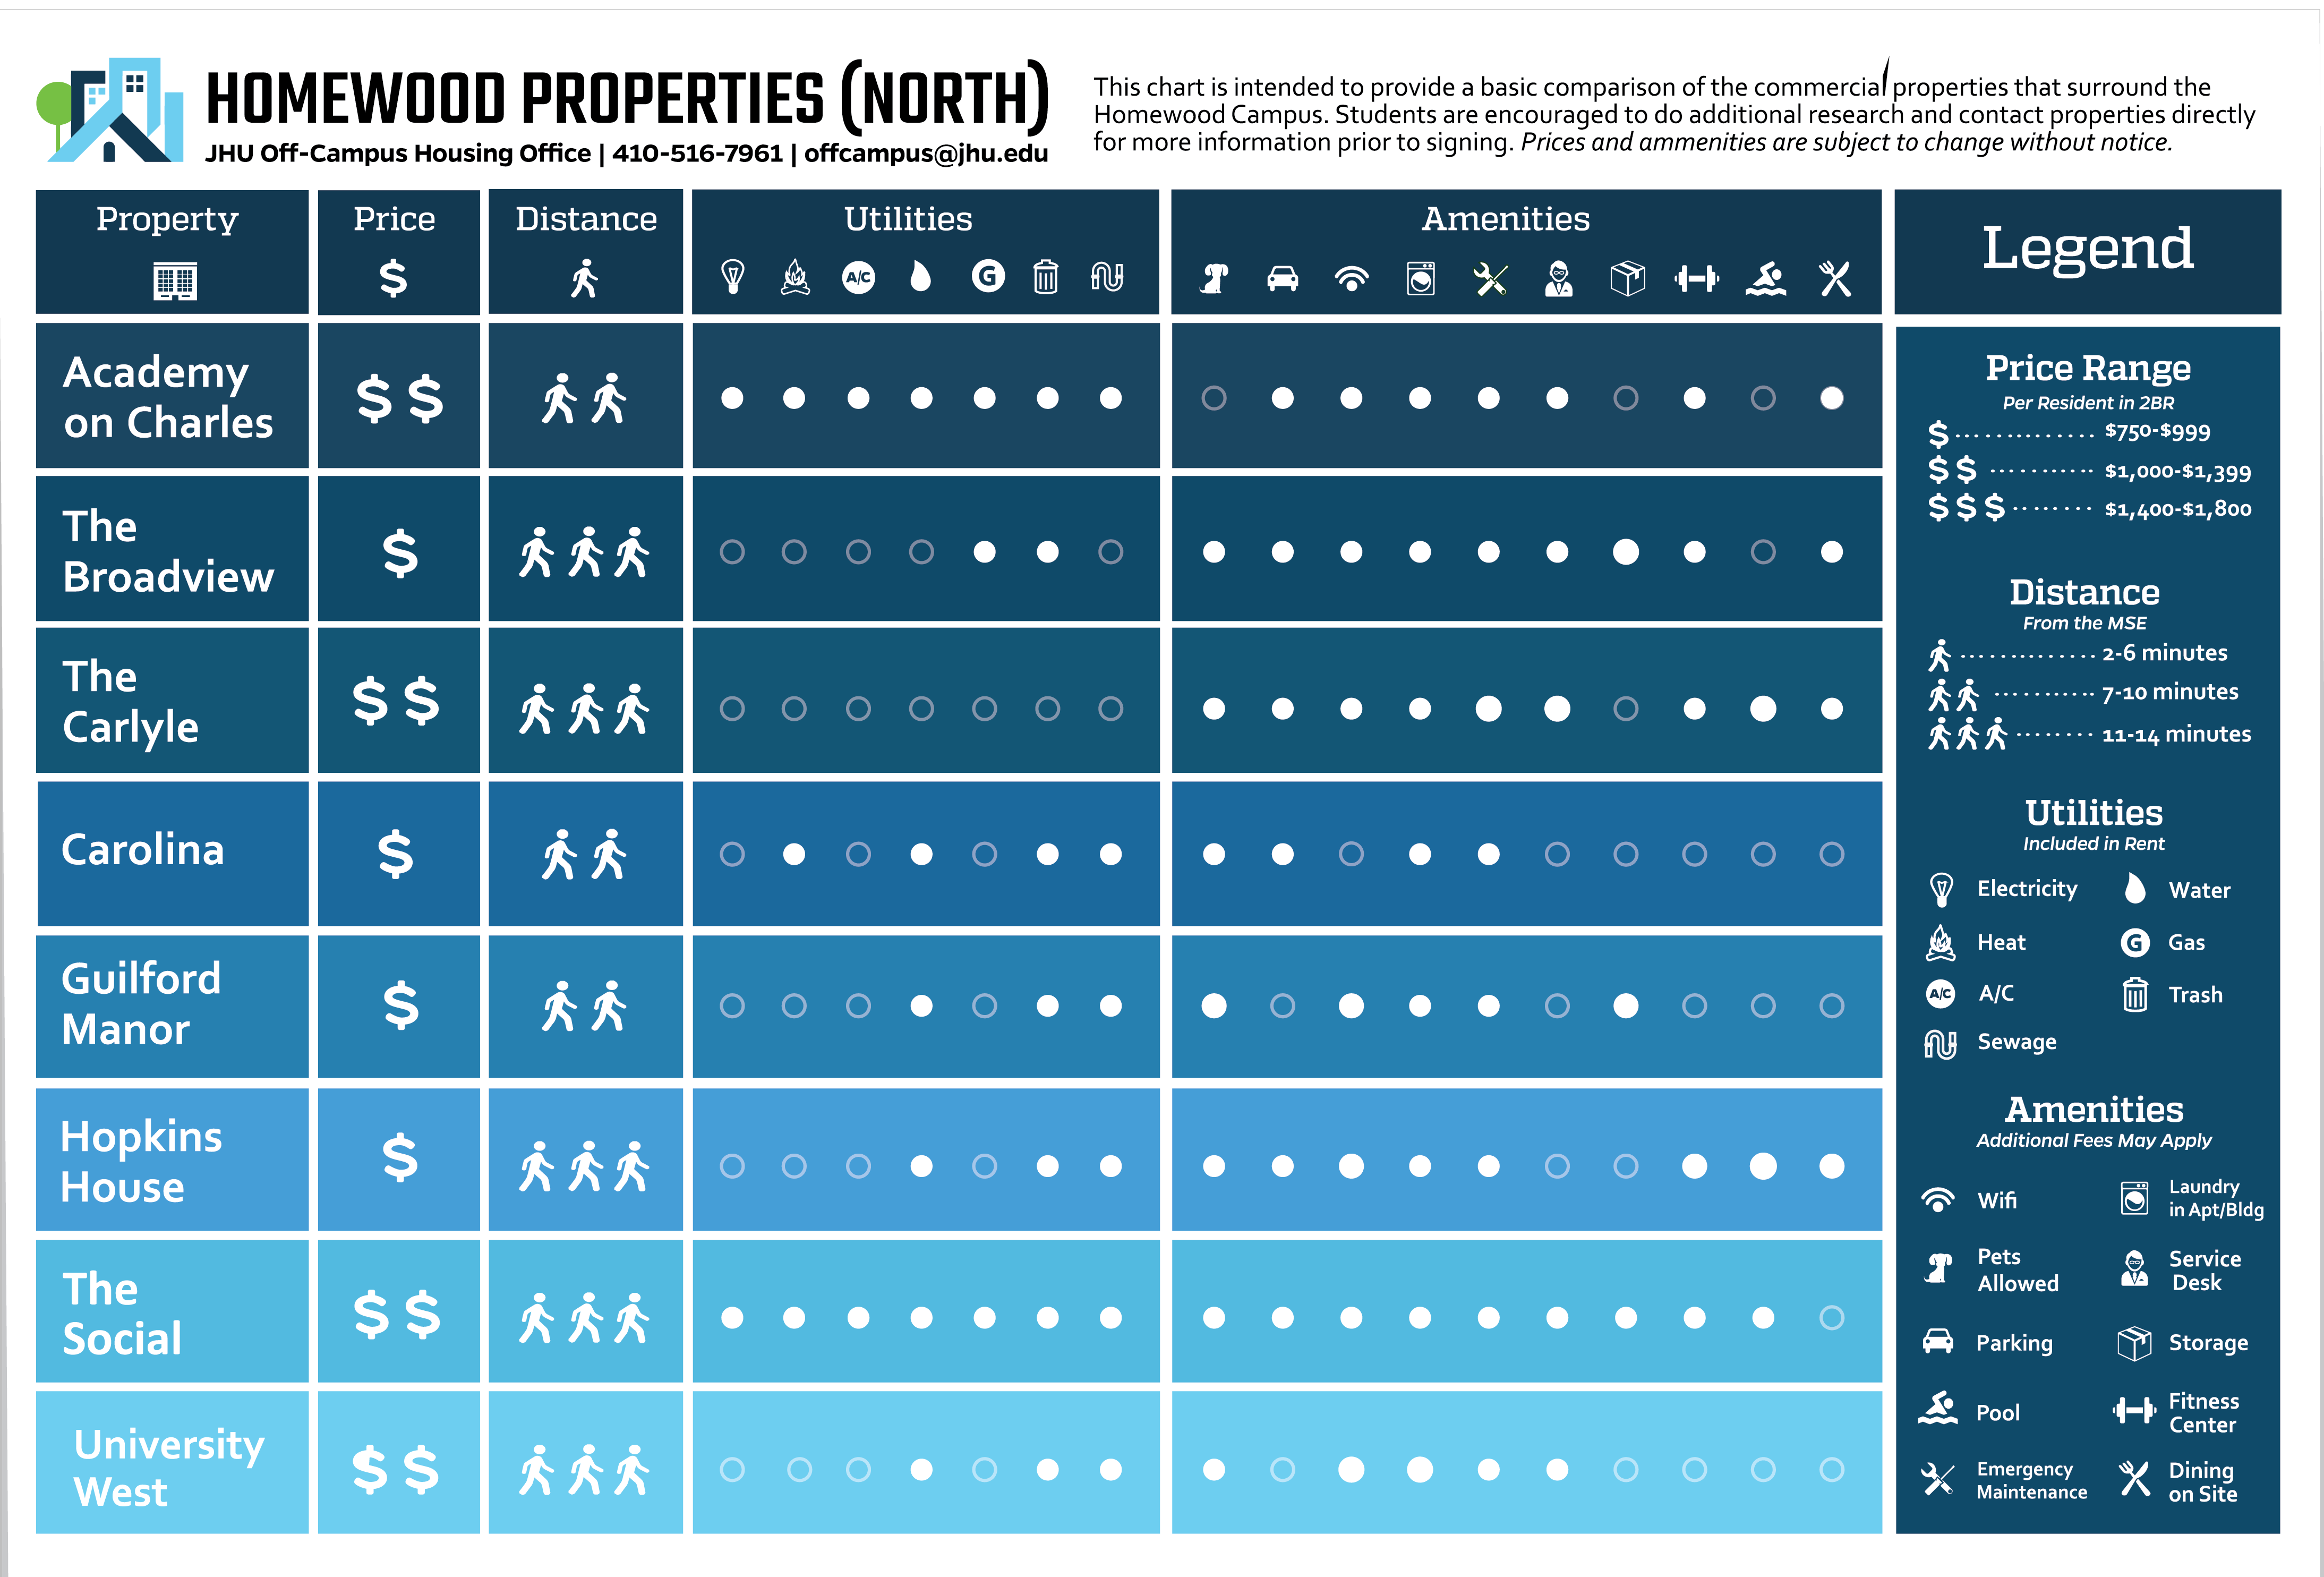 Comparison chart of north properties and their amenities near Homewood campus.